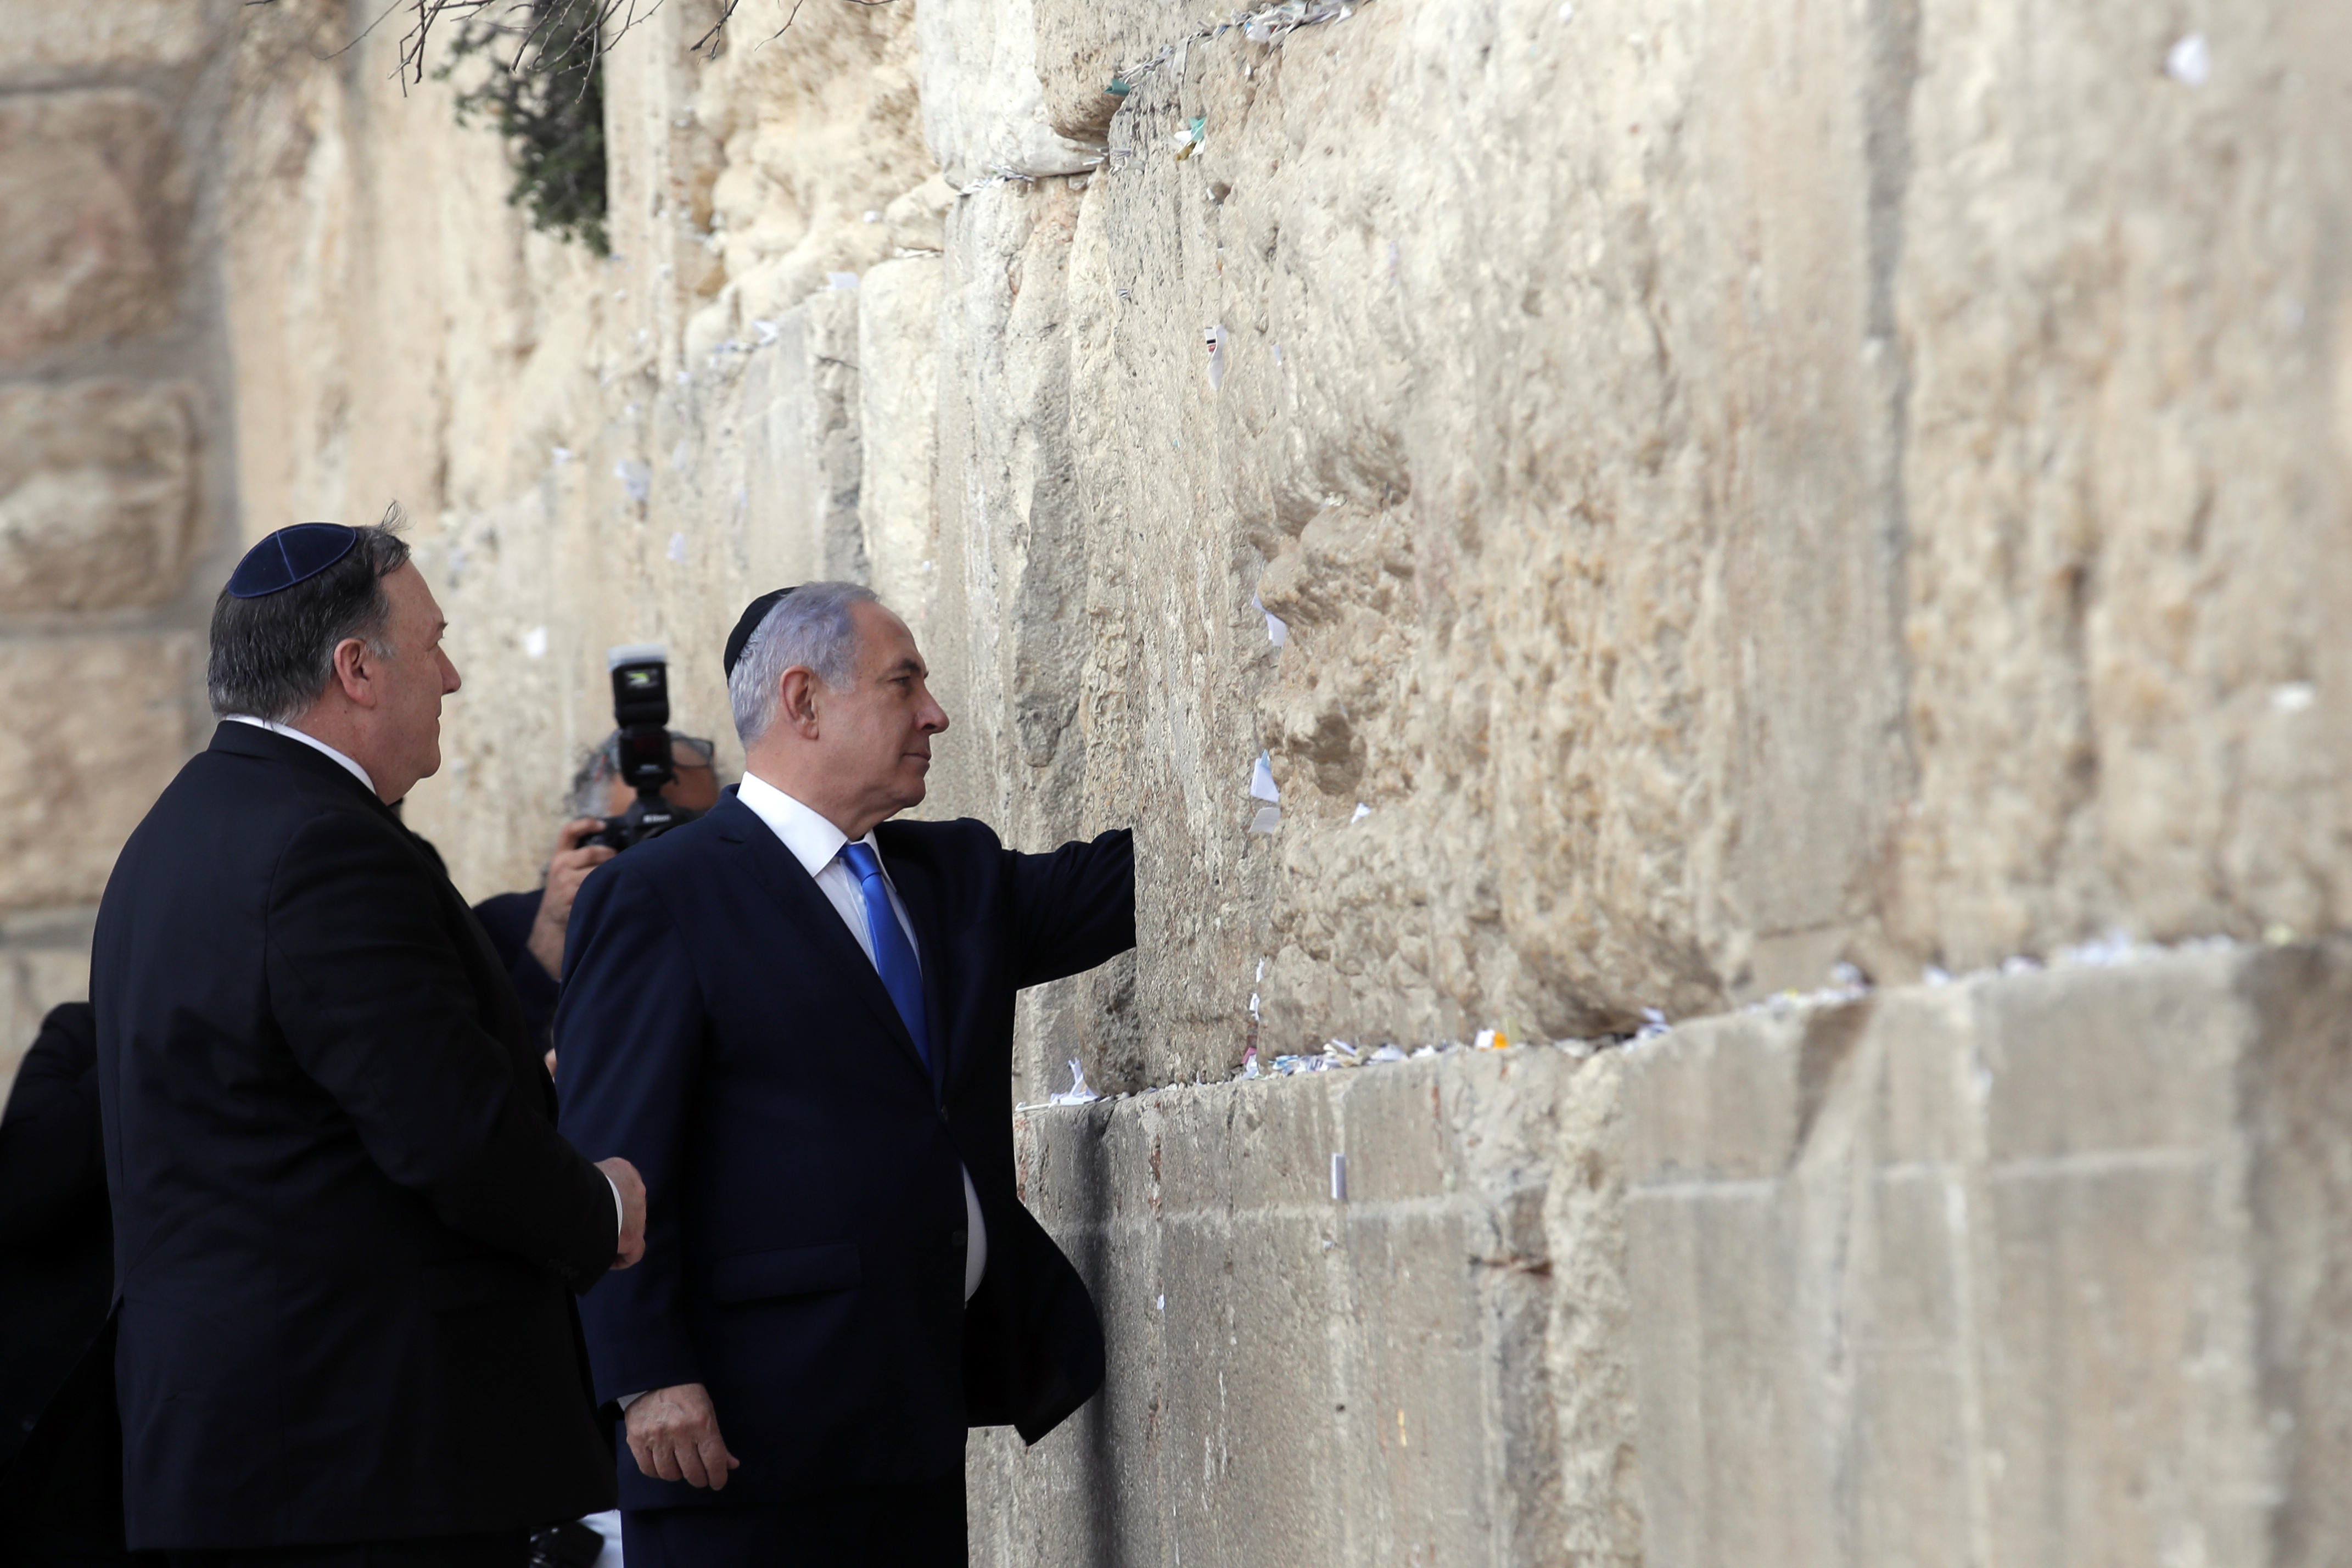 US abruptly endorses Israel's Golan sovereignty in big shift